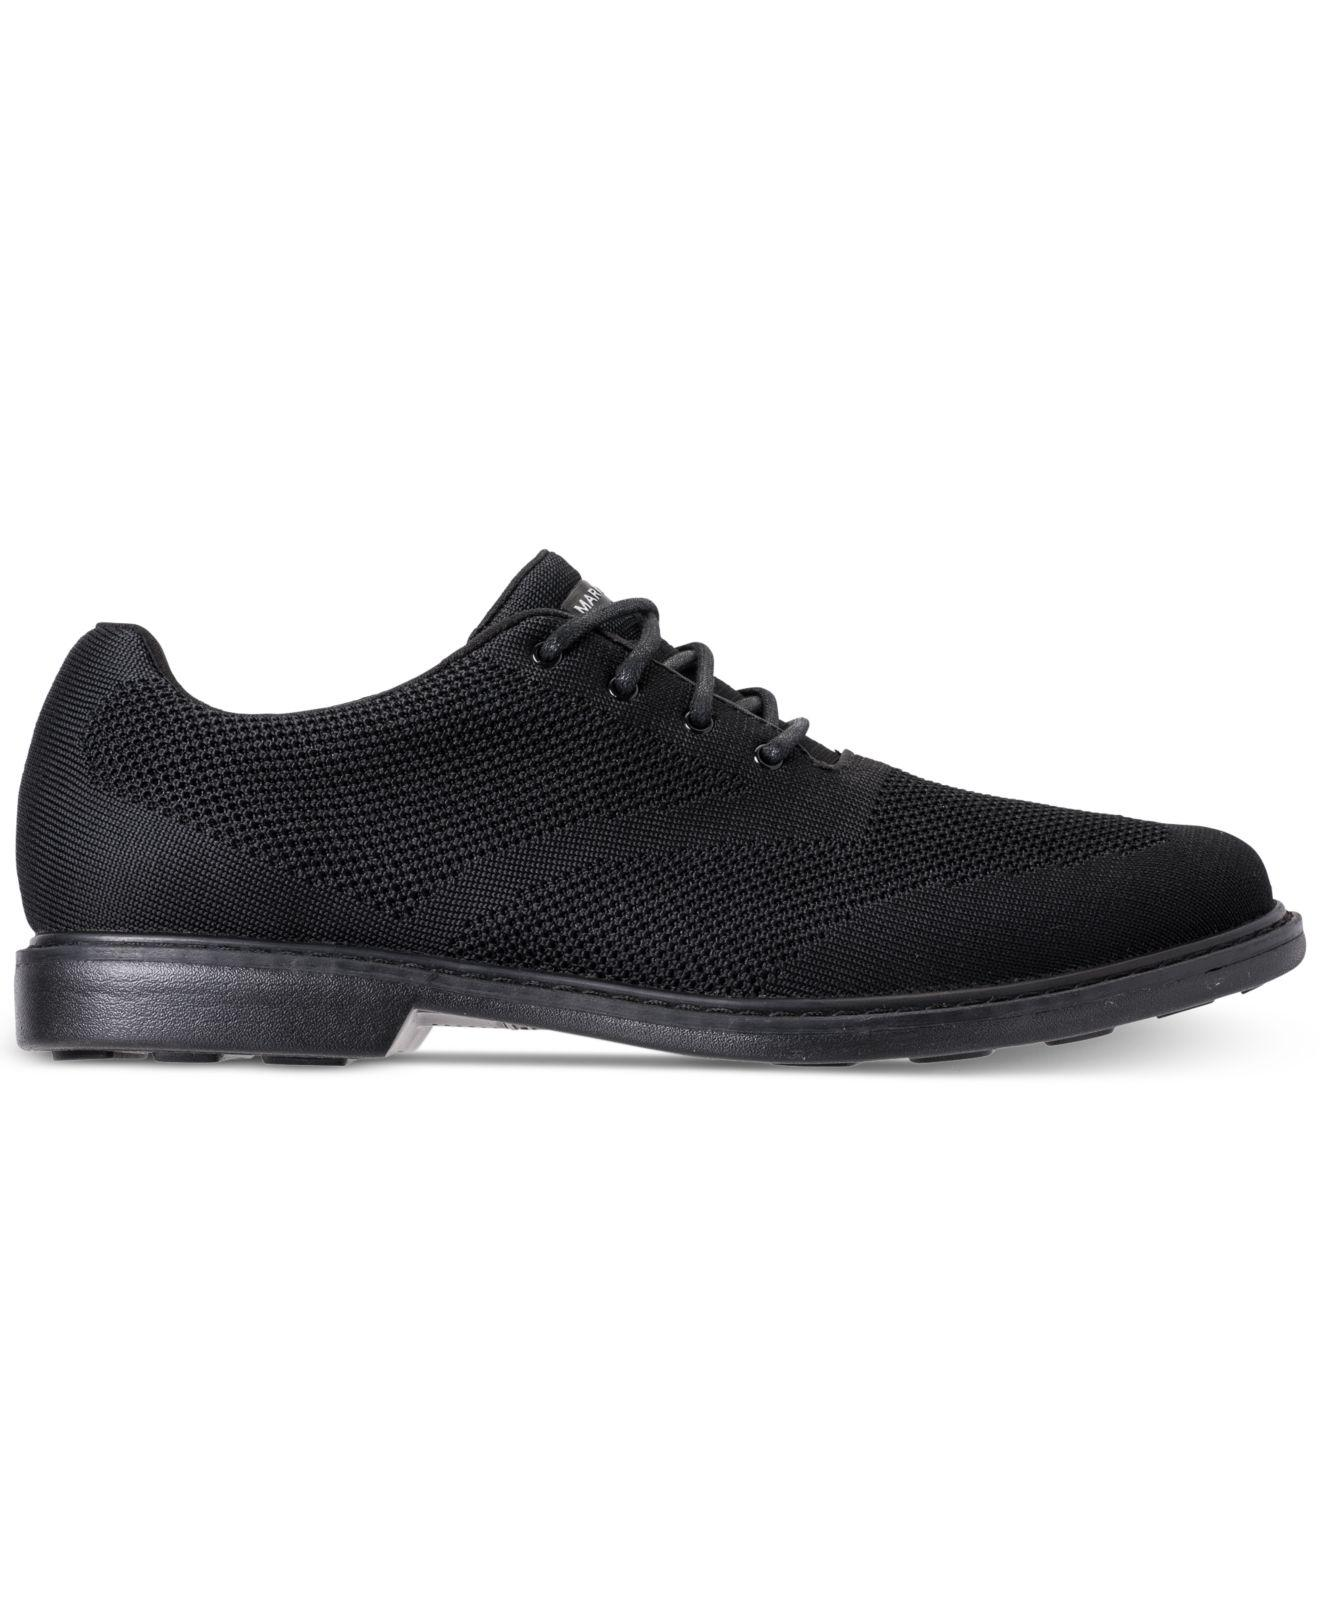 5a190047ee1 Lyst - Mark Nason Los Angeles Hardee Casual Dress Sneakers From Finish Line  in Black for Men